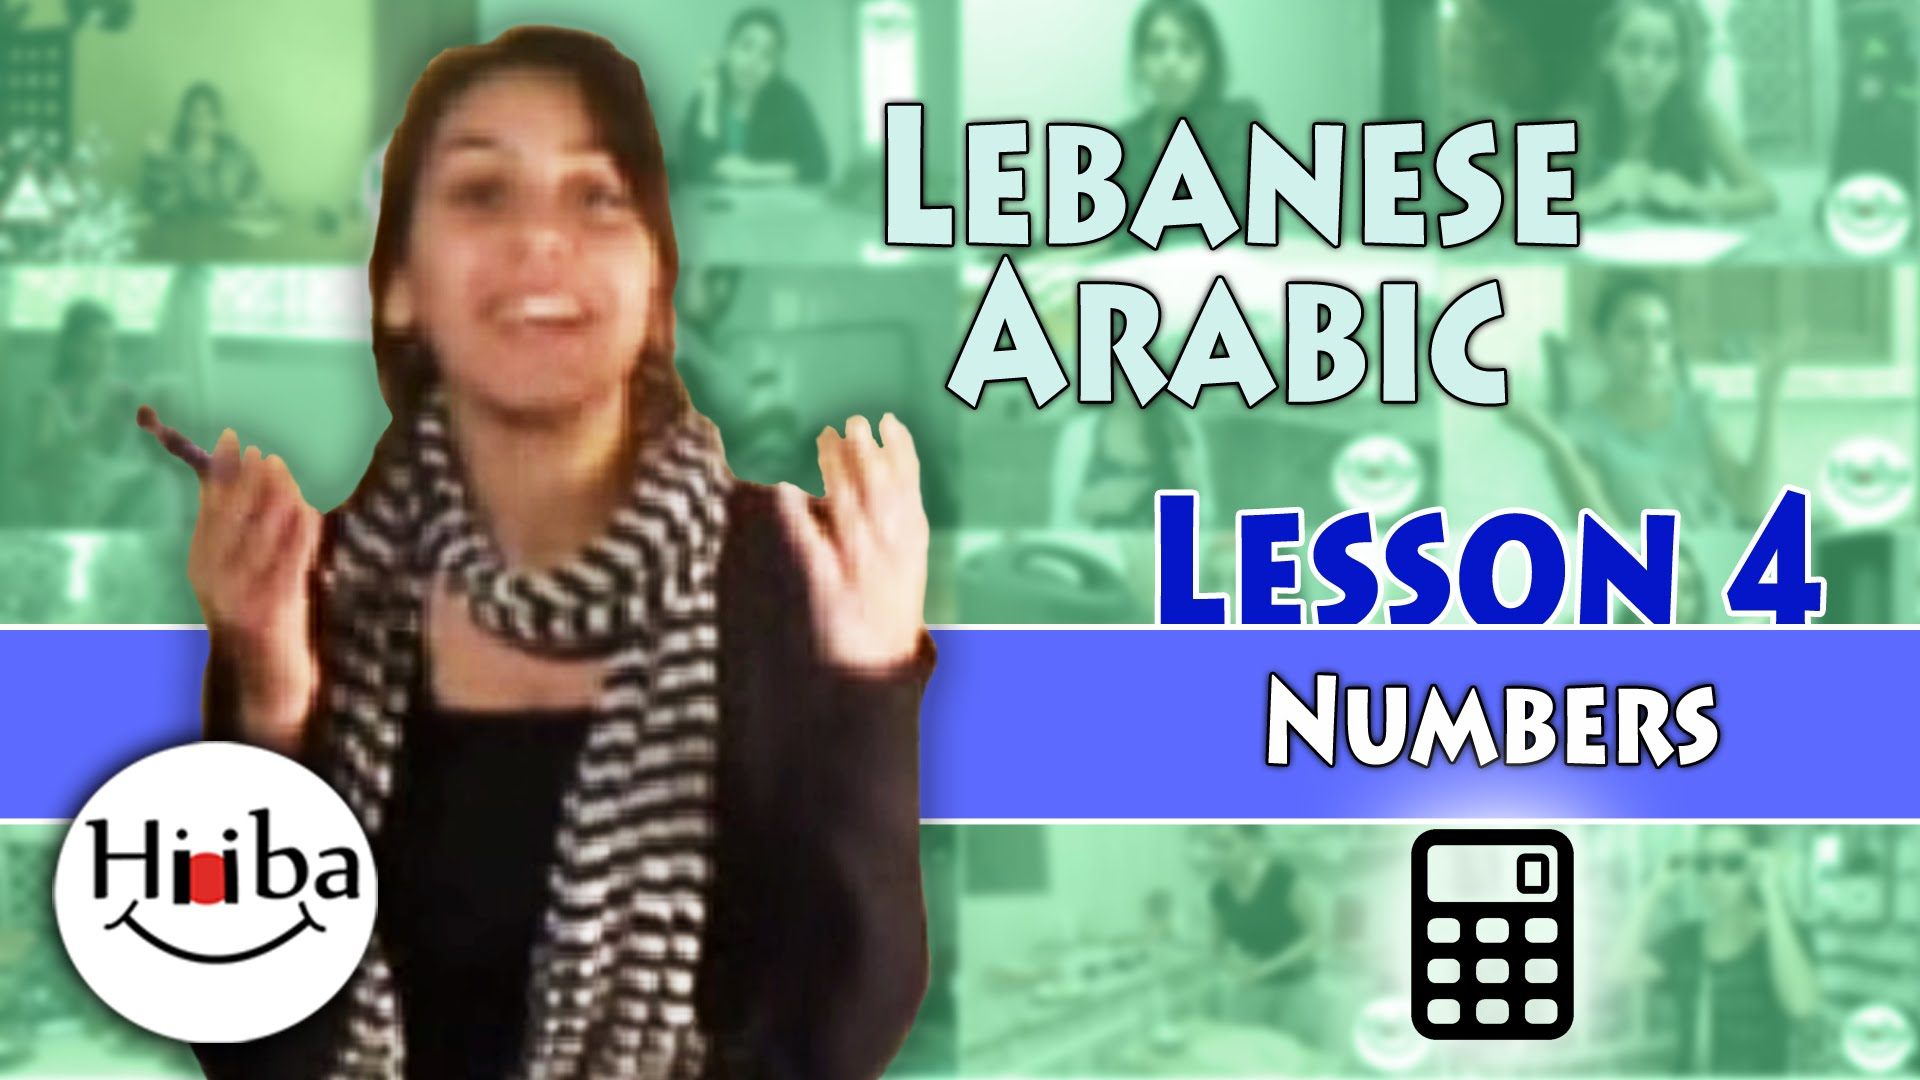 This is the thumbnail of the video of the Lebanese lesson number 4 about numbers. It shows Hiba Najem in a black shirt and a striped scarf, a picture of a calculator, and the title written in blue over a green background.